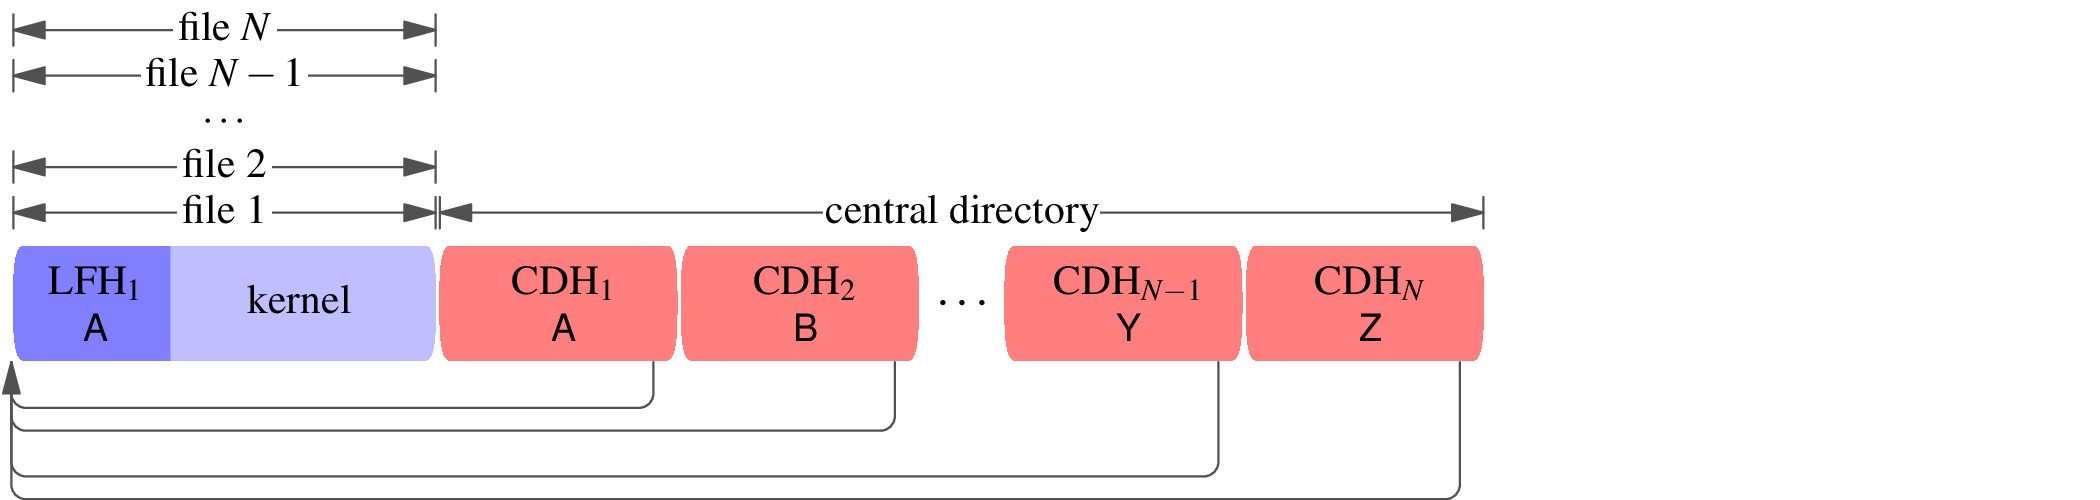 A block diagram of a zip file with fully overlapping files. The central directory header consists of central directory headers CDH[1], CDH[2], ..., CDH[N−1], CDH[N], with filenames A, B, ..., Y, Z. There is a single local file header LFH[1] with filename A whose file data is a compressed kernel. Every one of the central directory headers points backwards to the same local file header, LFH[1]. The lone file is multiply labeled file 1, file 2, ..., file N−1, file N.